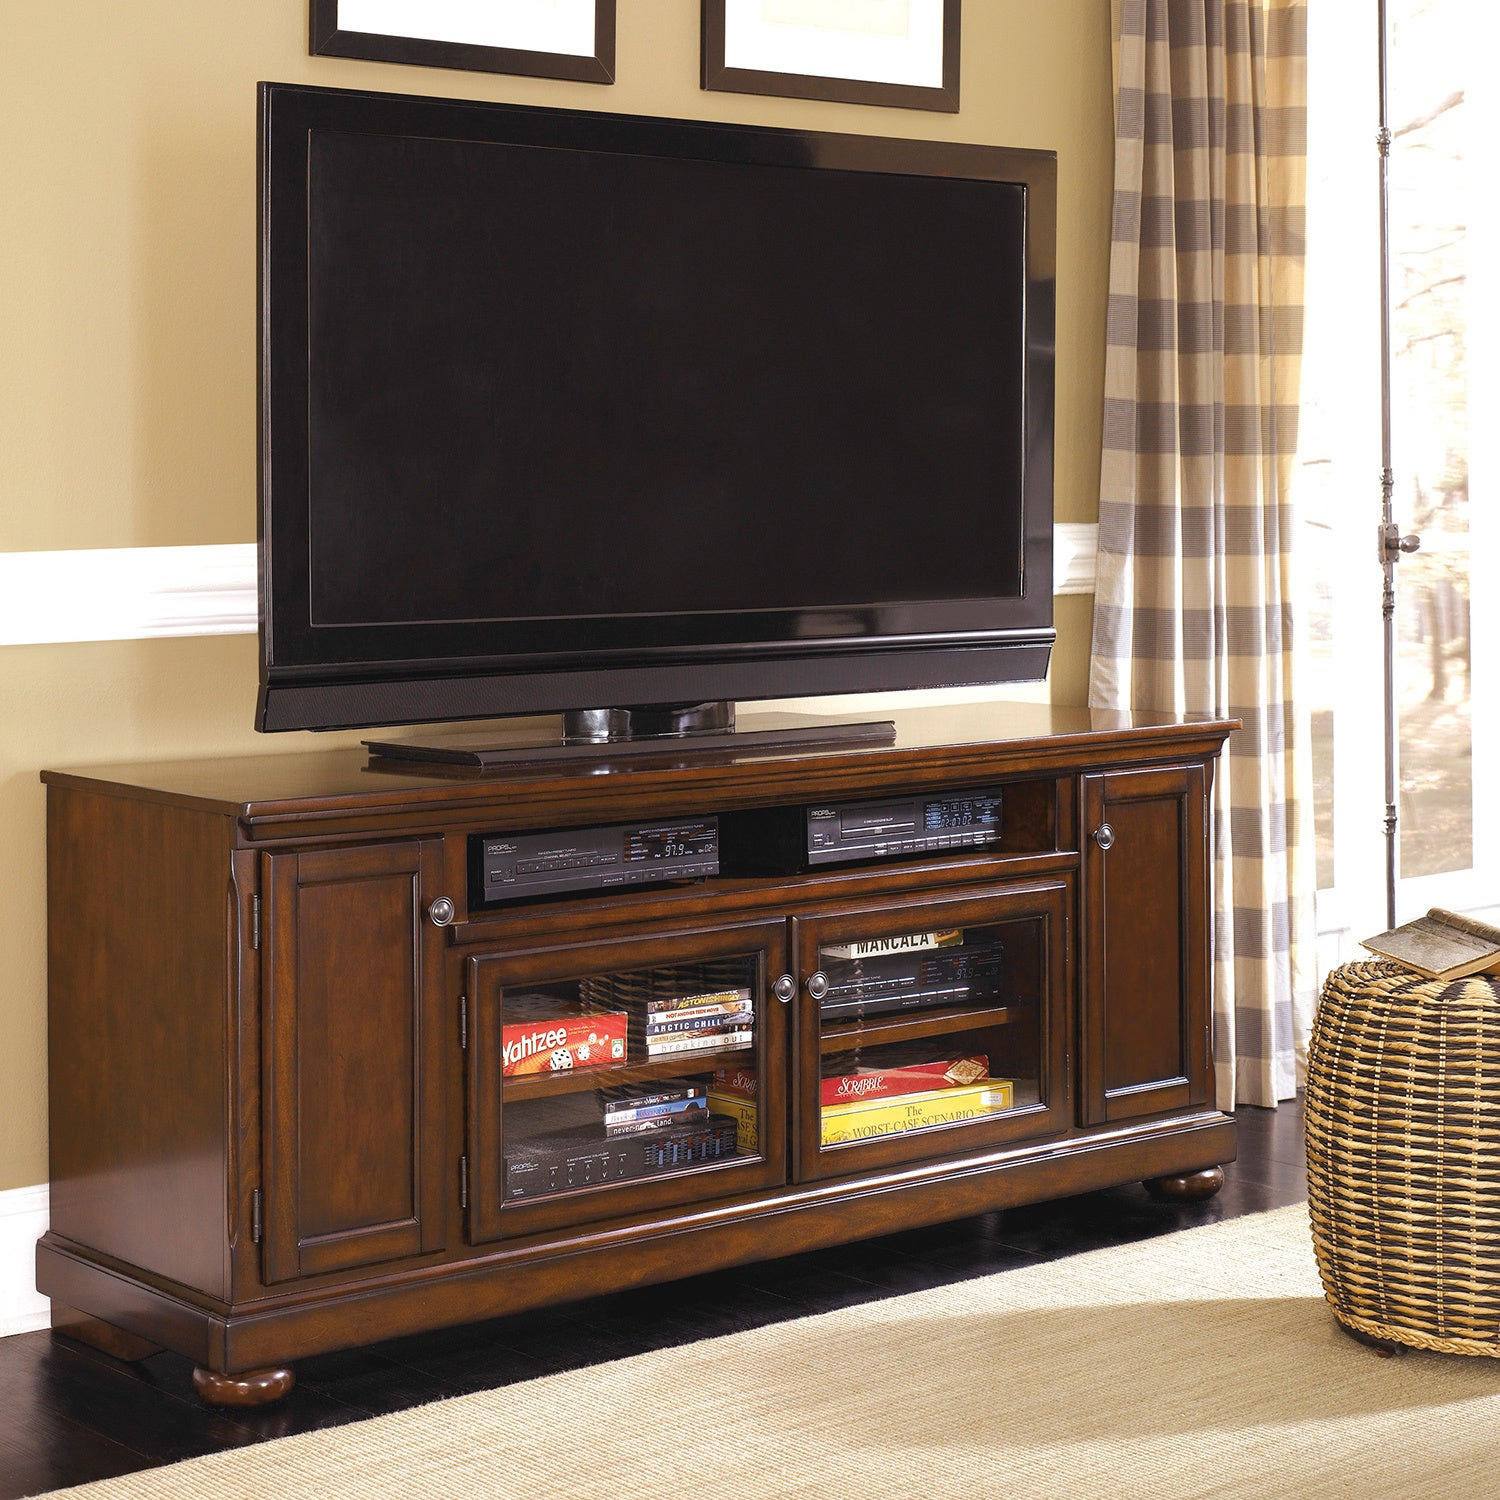 Shop Signature Designs By Ashley Porter Extra Large Rustic Brown Tv